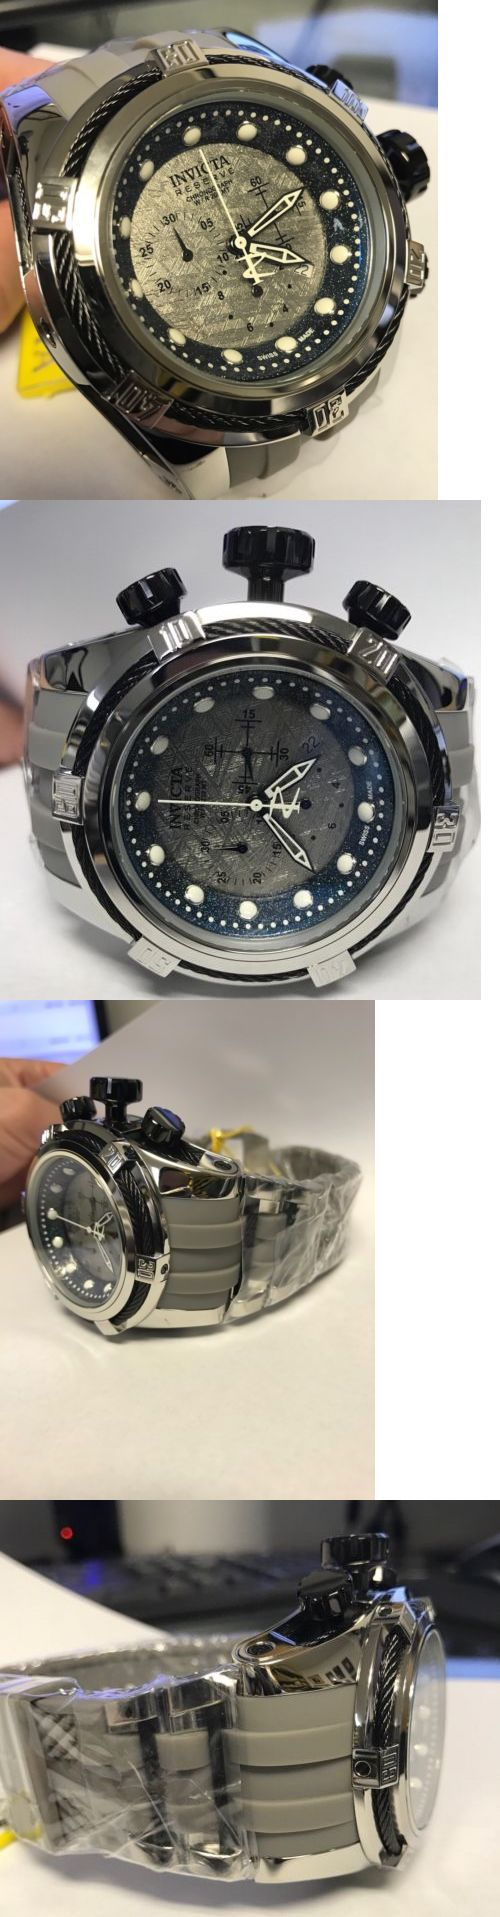 Other Jewelry and Watches 98863: New Invicta 19735 Meteorite Dial Swiss Made Chronograph 52Mm Watch BUY IT NOW ONLY: $559.99